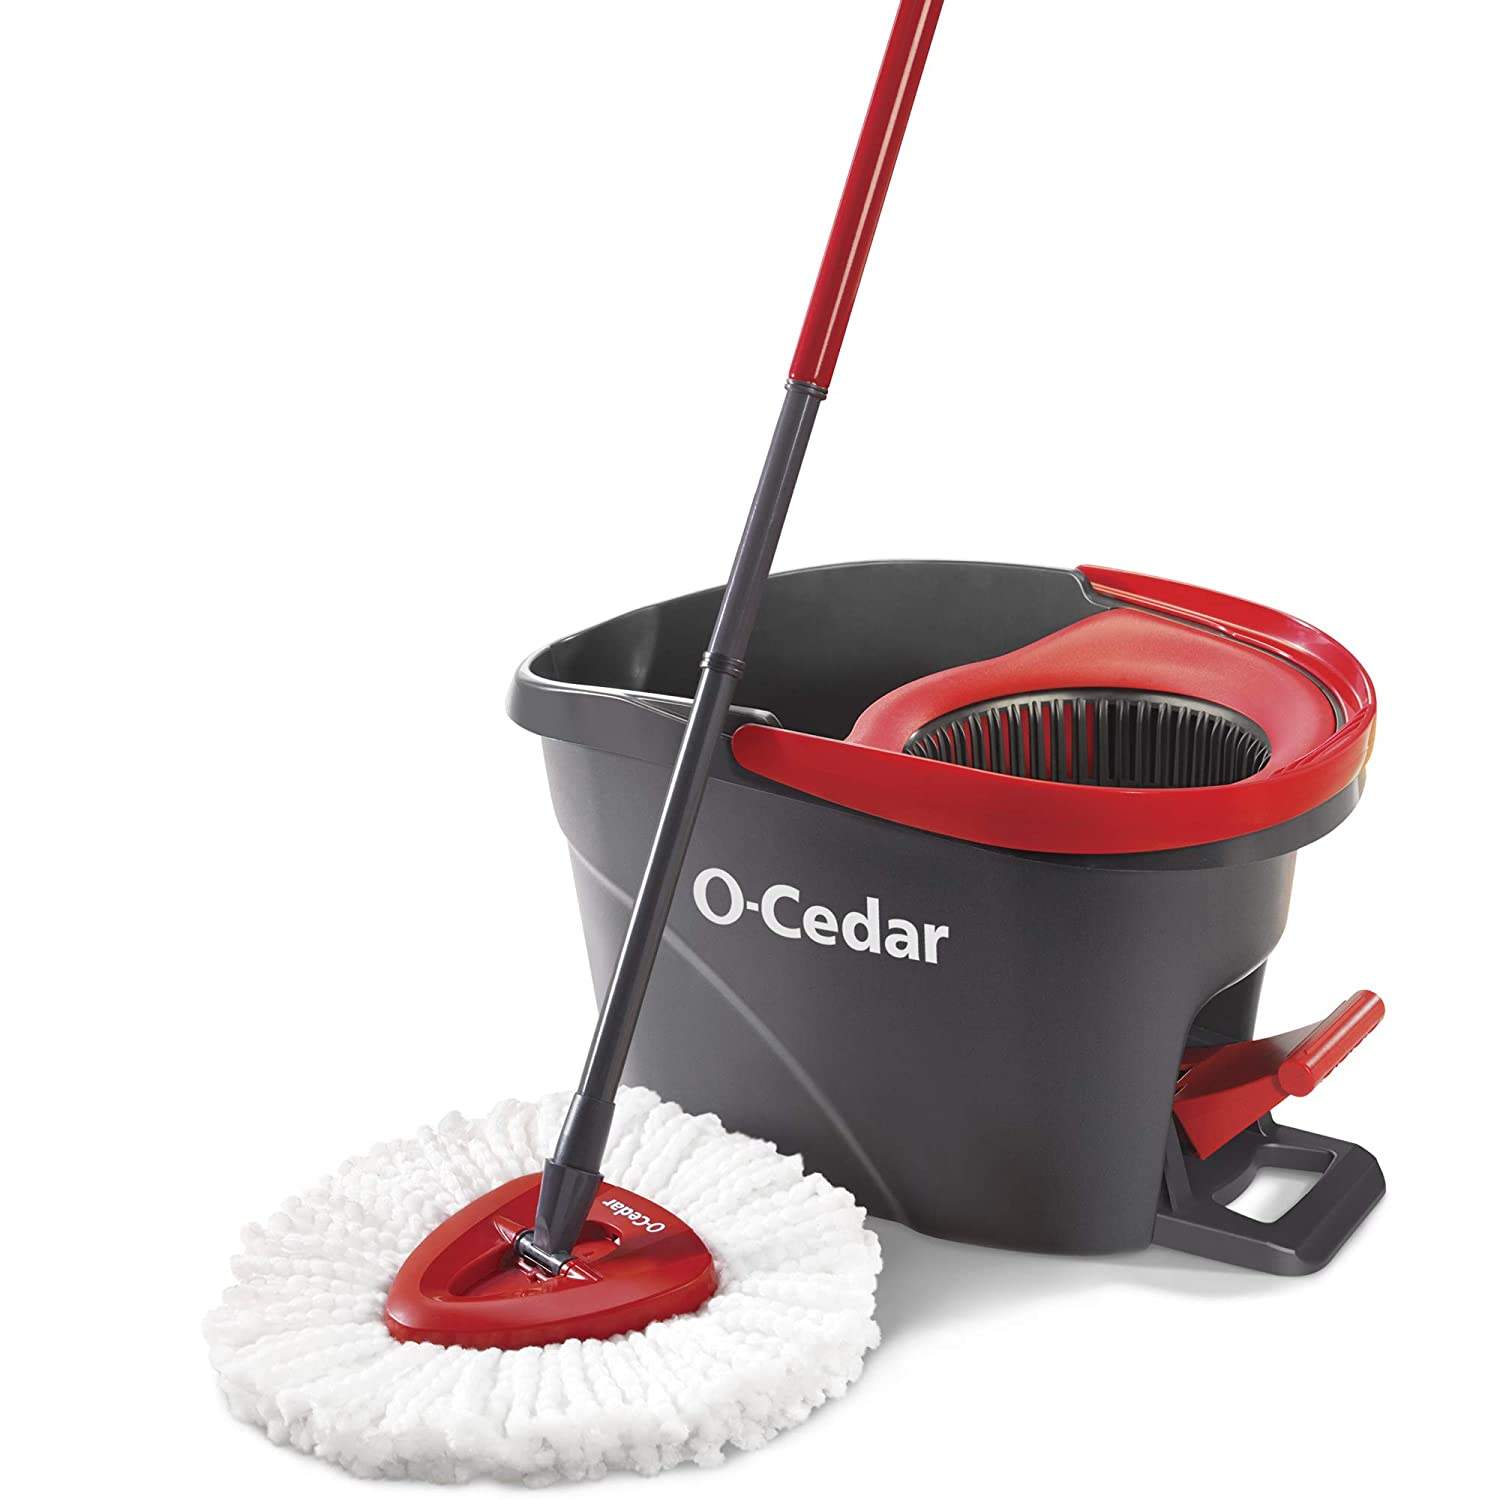 The Best 360 spin mop - Our pick